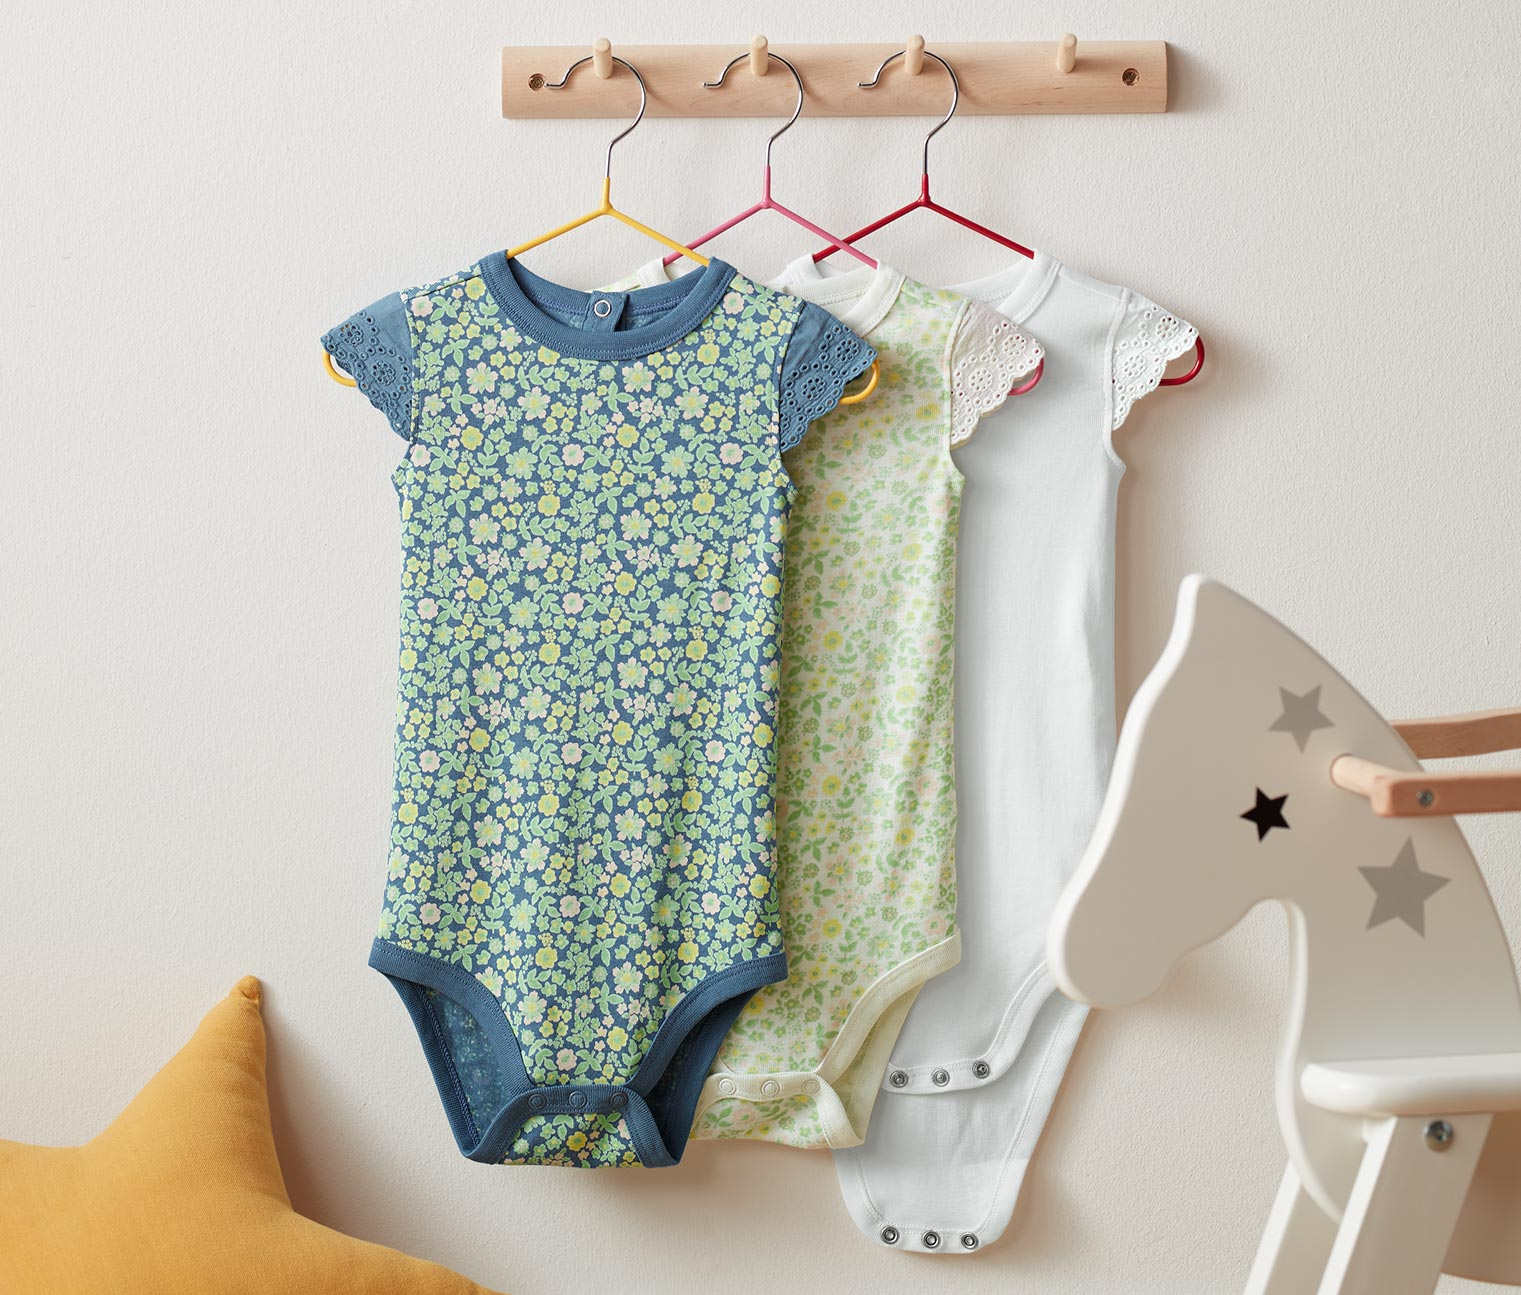 Image of 3 Baby-Bodys